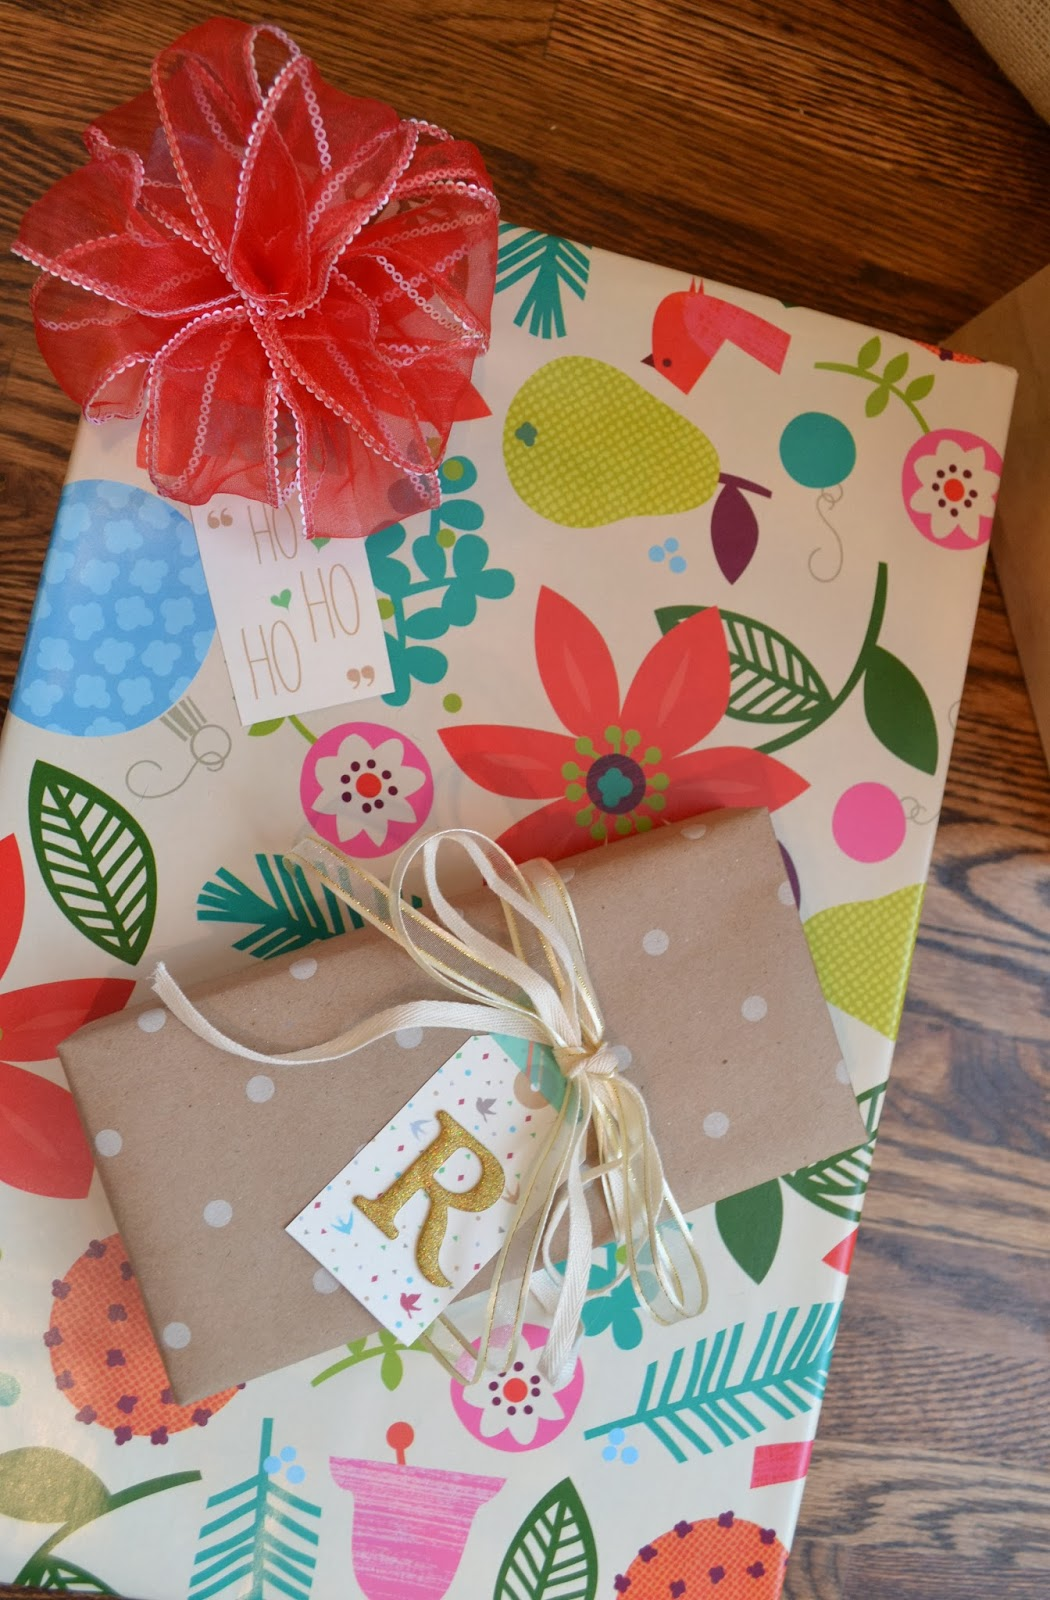 Hobby lobby craft bags -  Craft Bags Hobby Lobby Put A Bow On It Straight Style